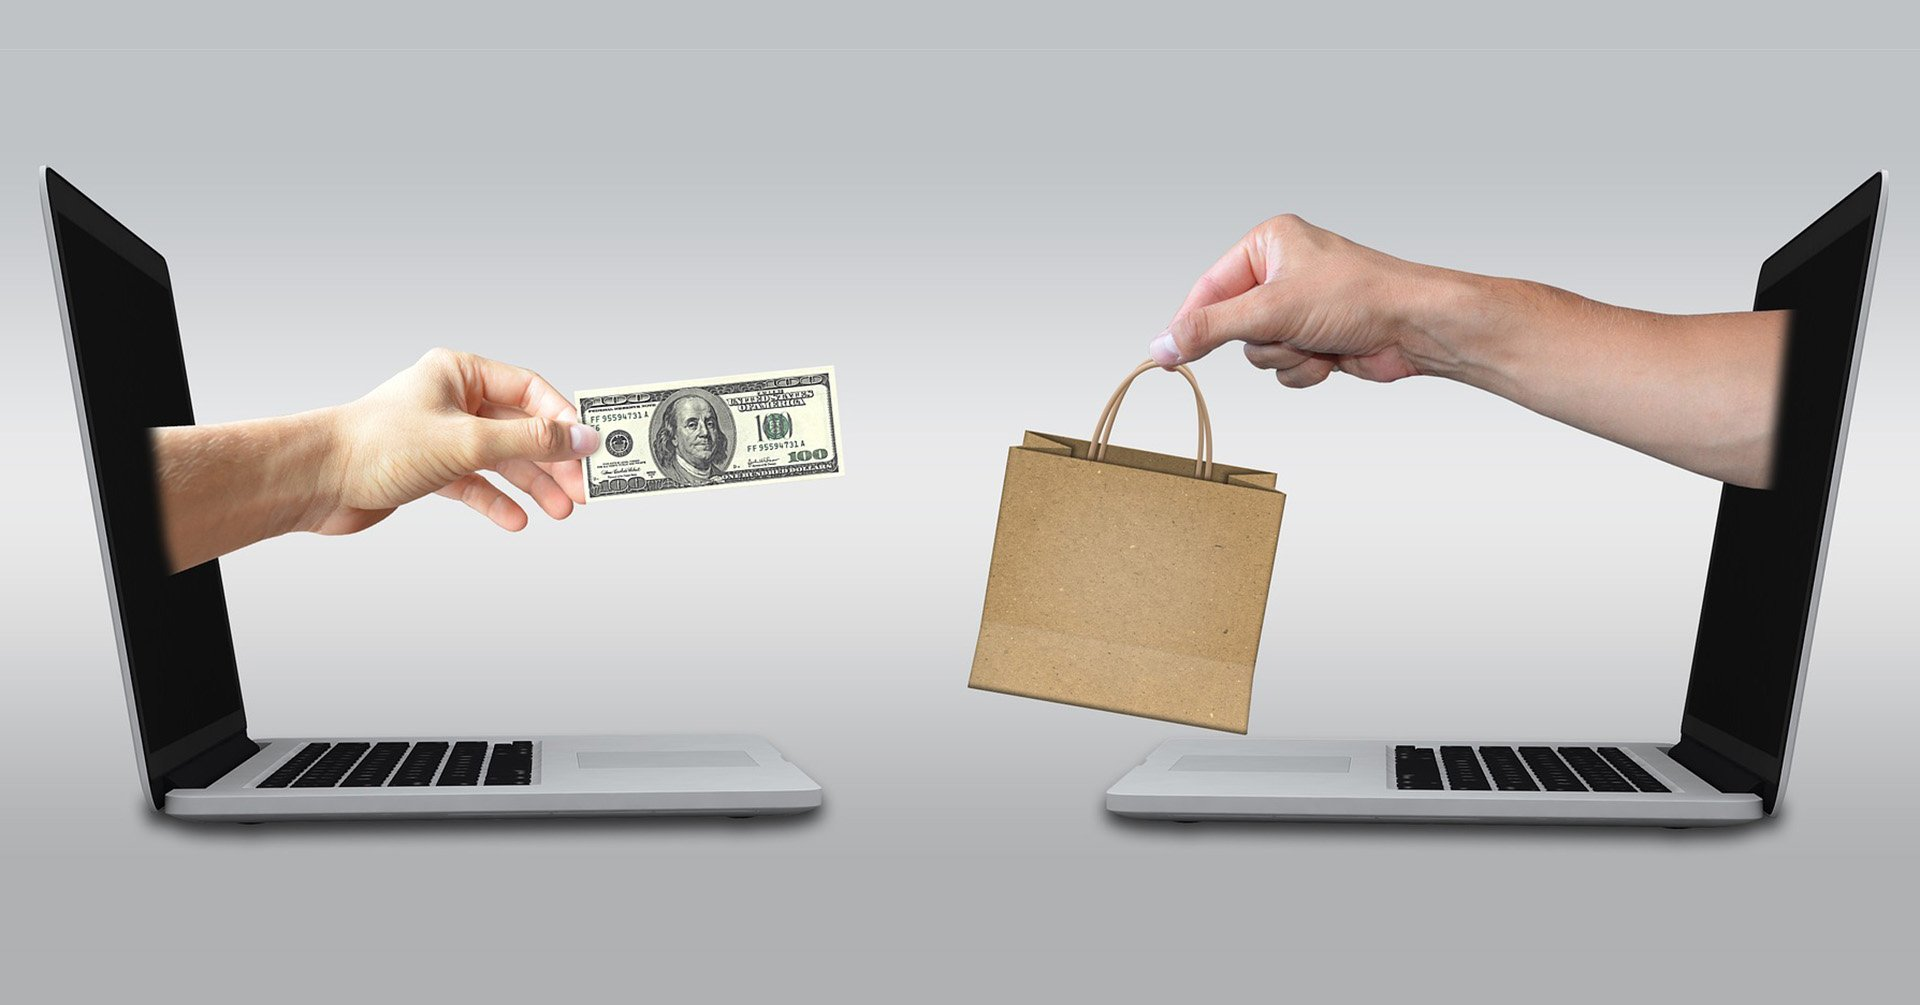 Two laptops that have arms coming out of the screens. The hands hold money (left) and a shopping bag (right).